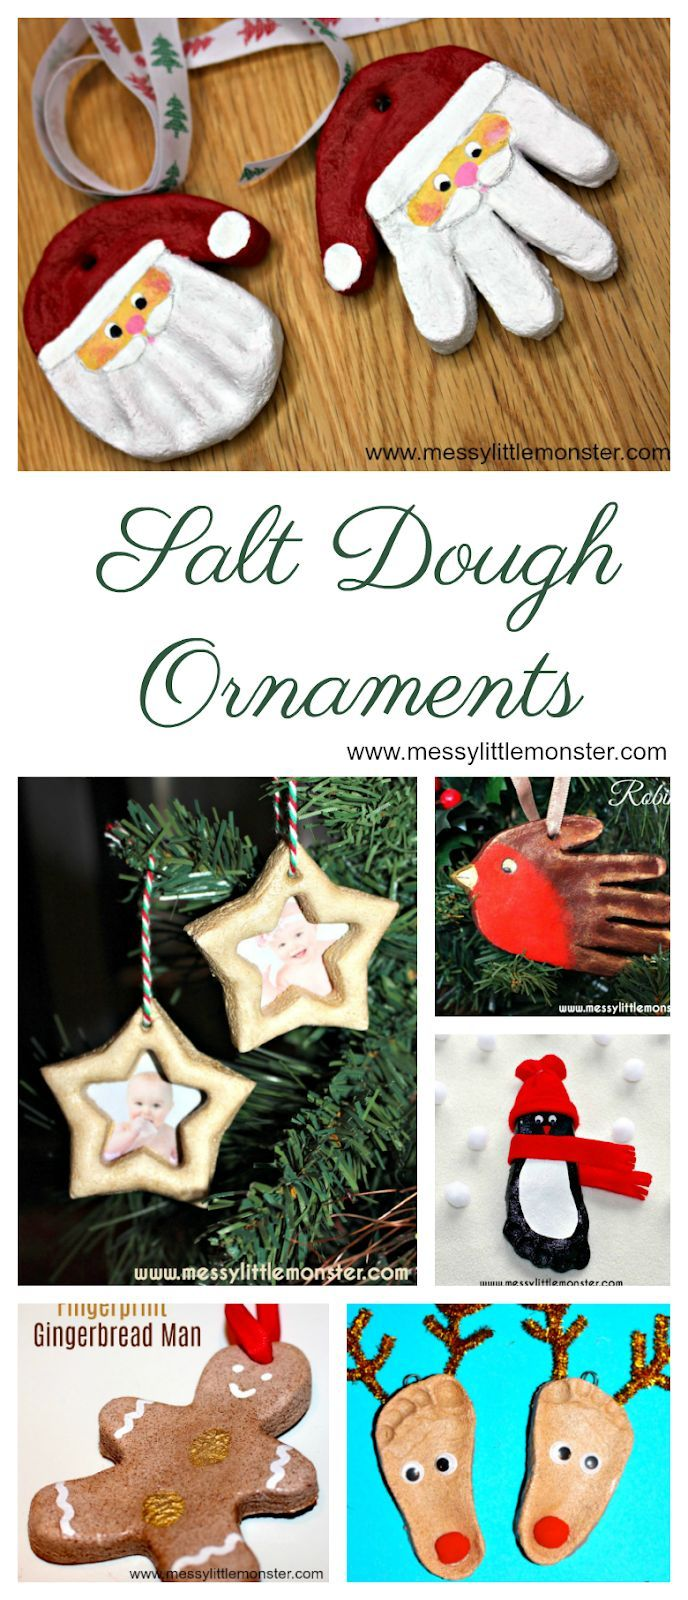 Salt Dough Ornaments Use Our Salt Dough Ornament Recipe To Make Your Own Salt Dough Chr Kids Christmas Ornaments Kids Ornaments Salt Dough Christmas Ornaments